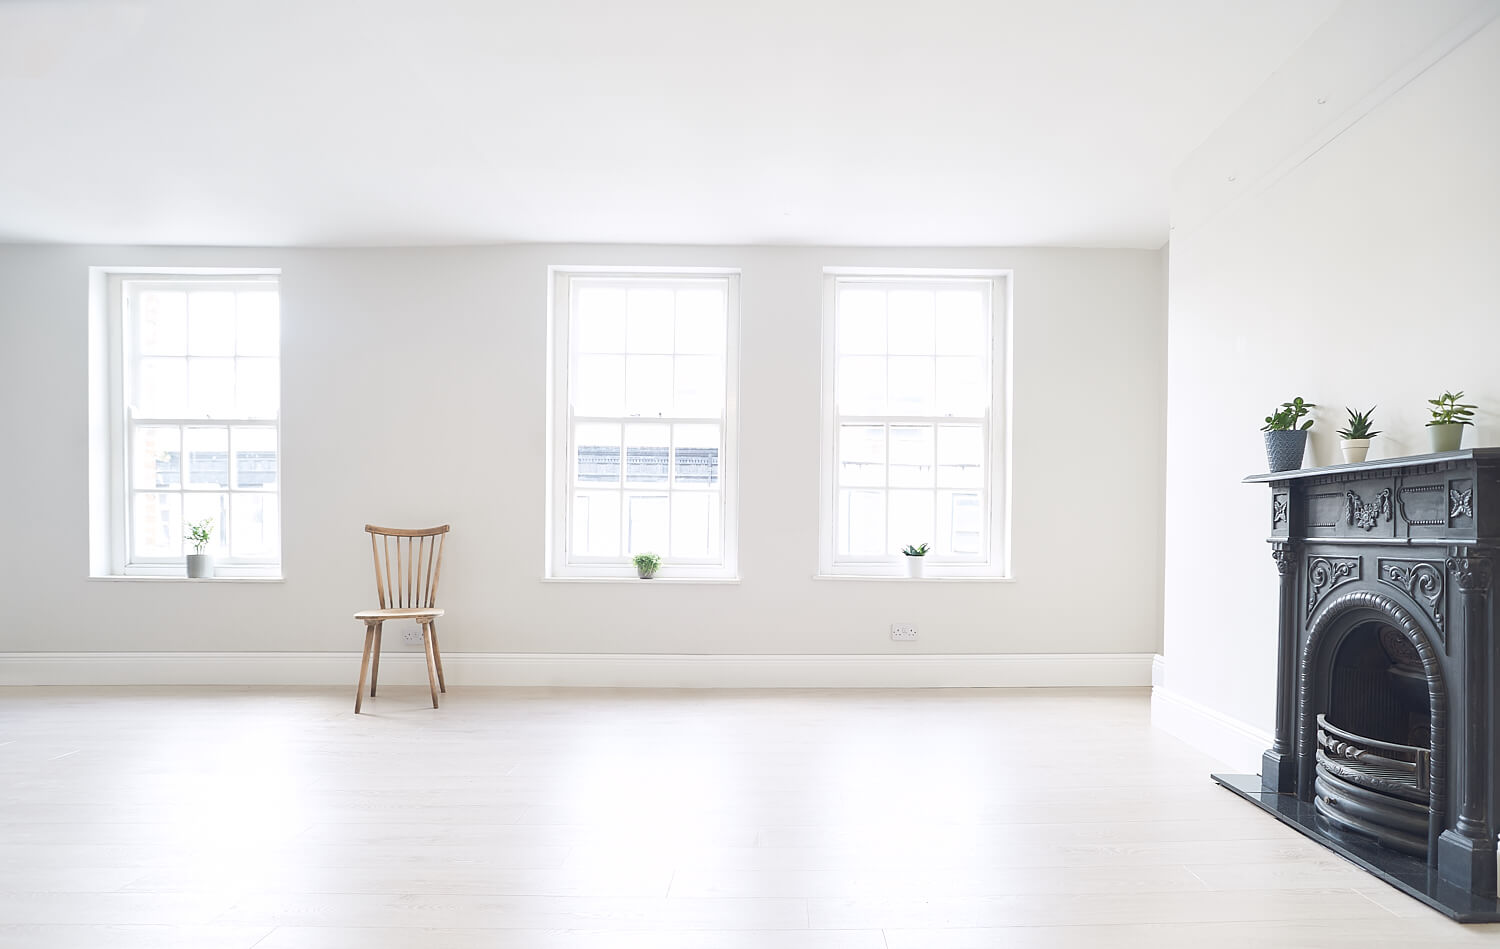 Product photography studio with period features including skirting boards, sash windows and cast iron fireplace